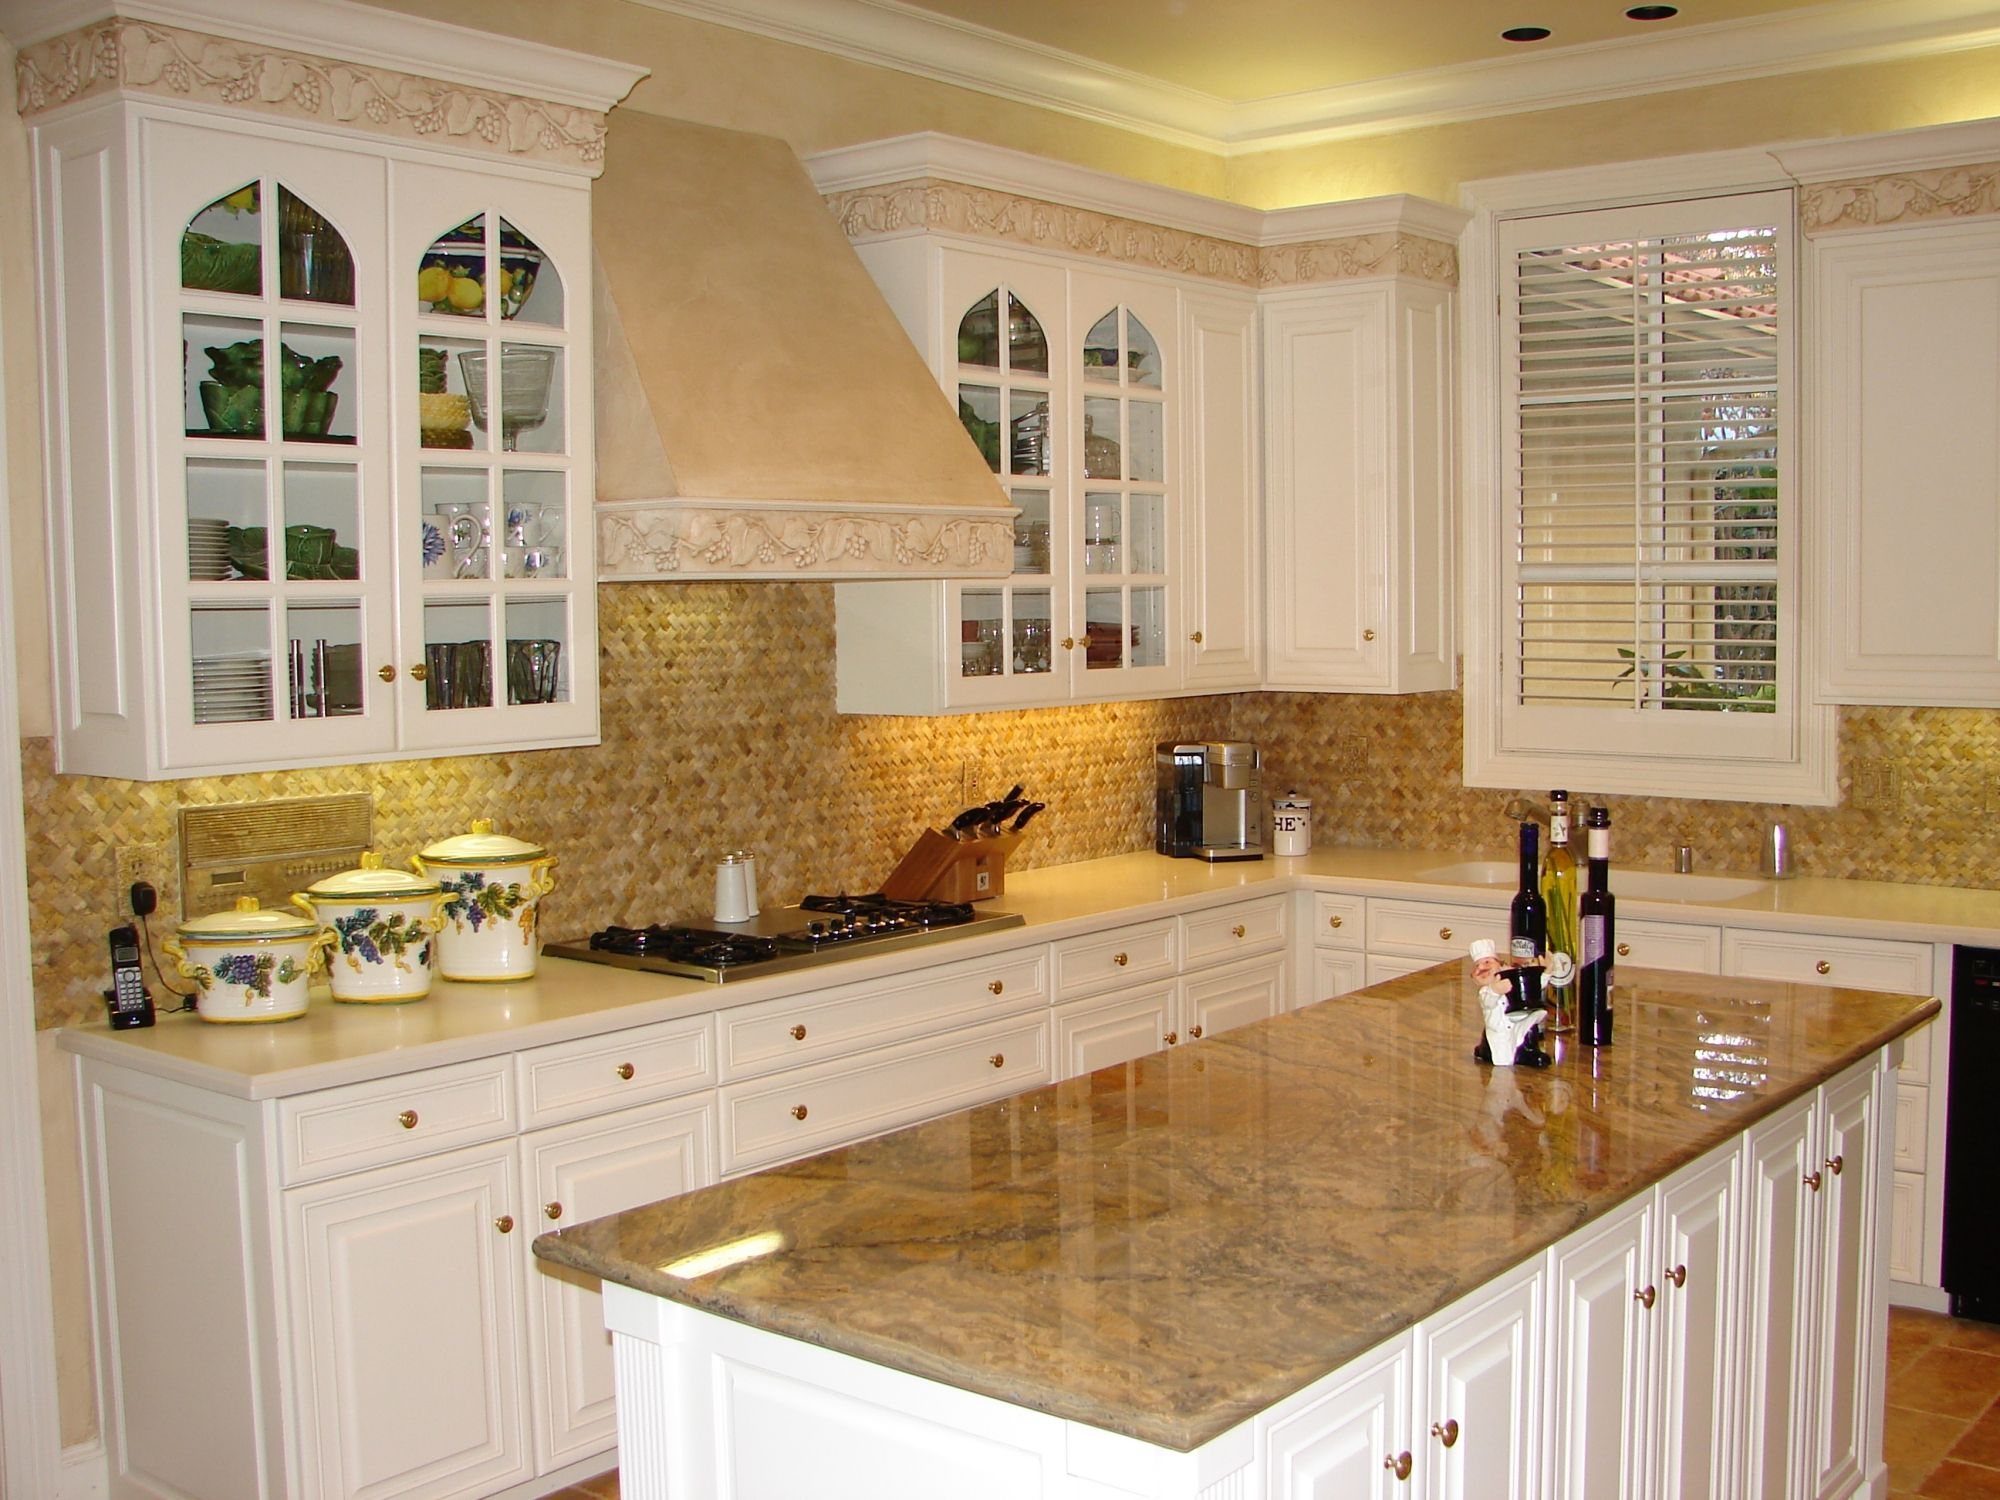 Granite Kitchen Countertops With White Cabinets White Cabinets With Earth Tone Back Splash And Tan Granite